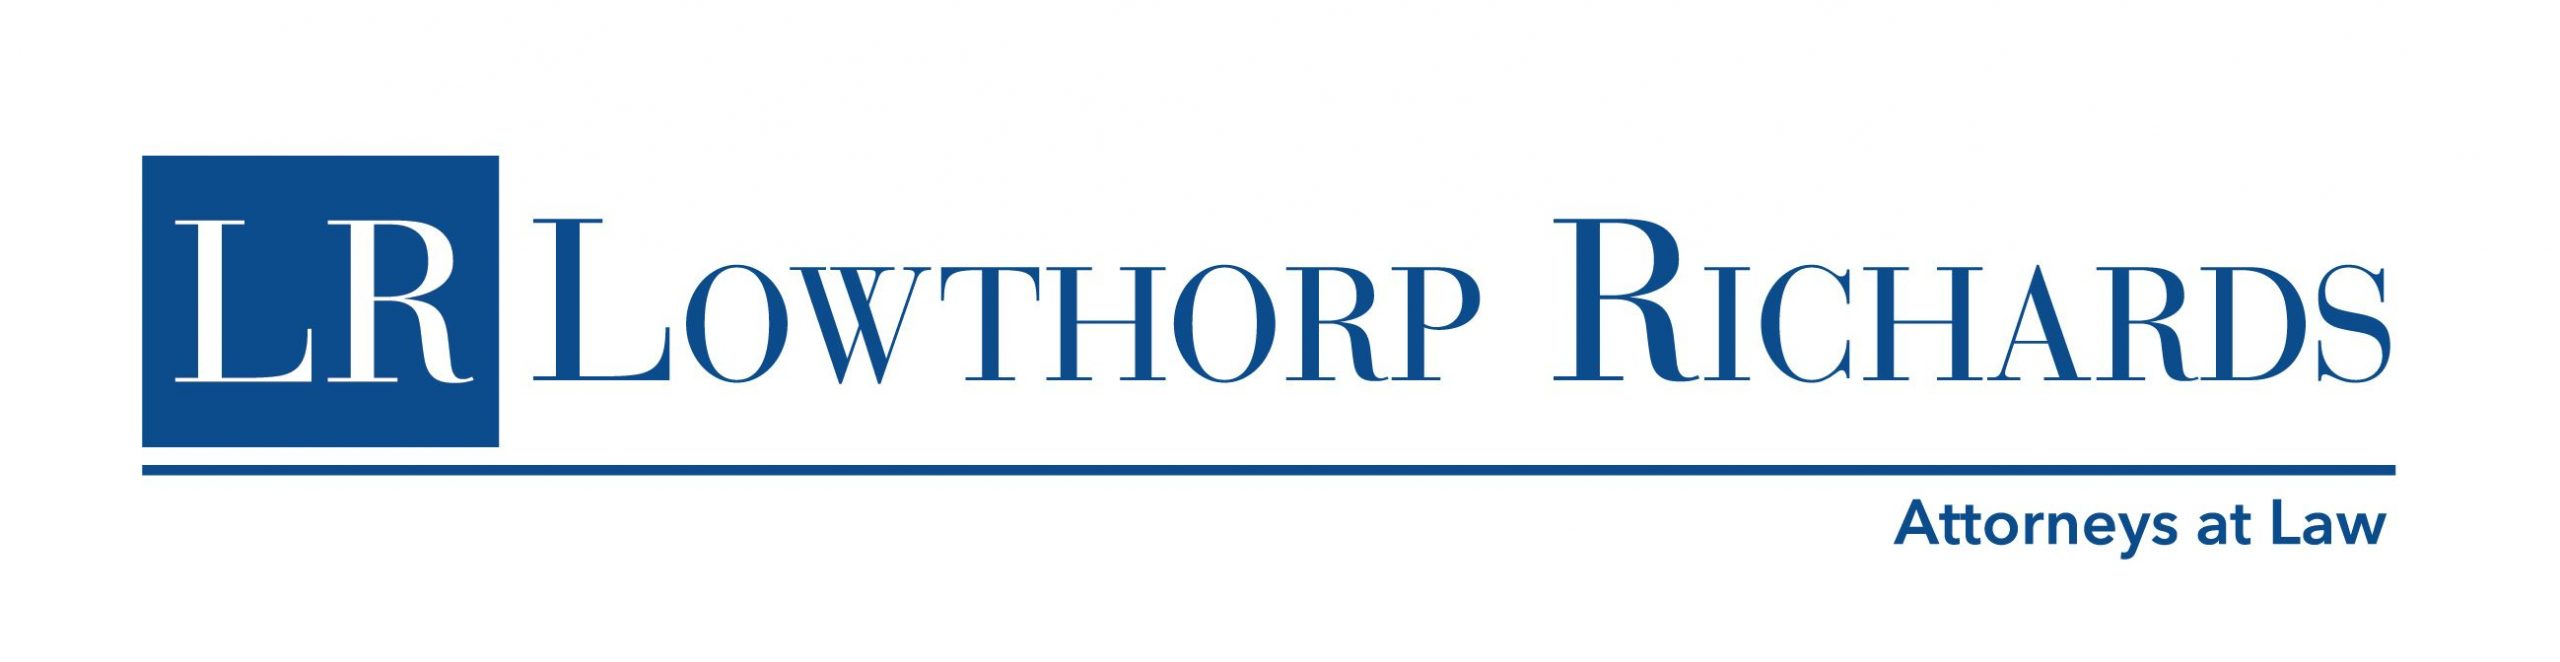 Lowthorp Richards Attorney at Law logo